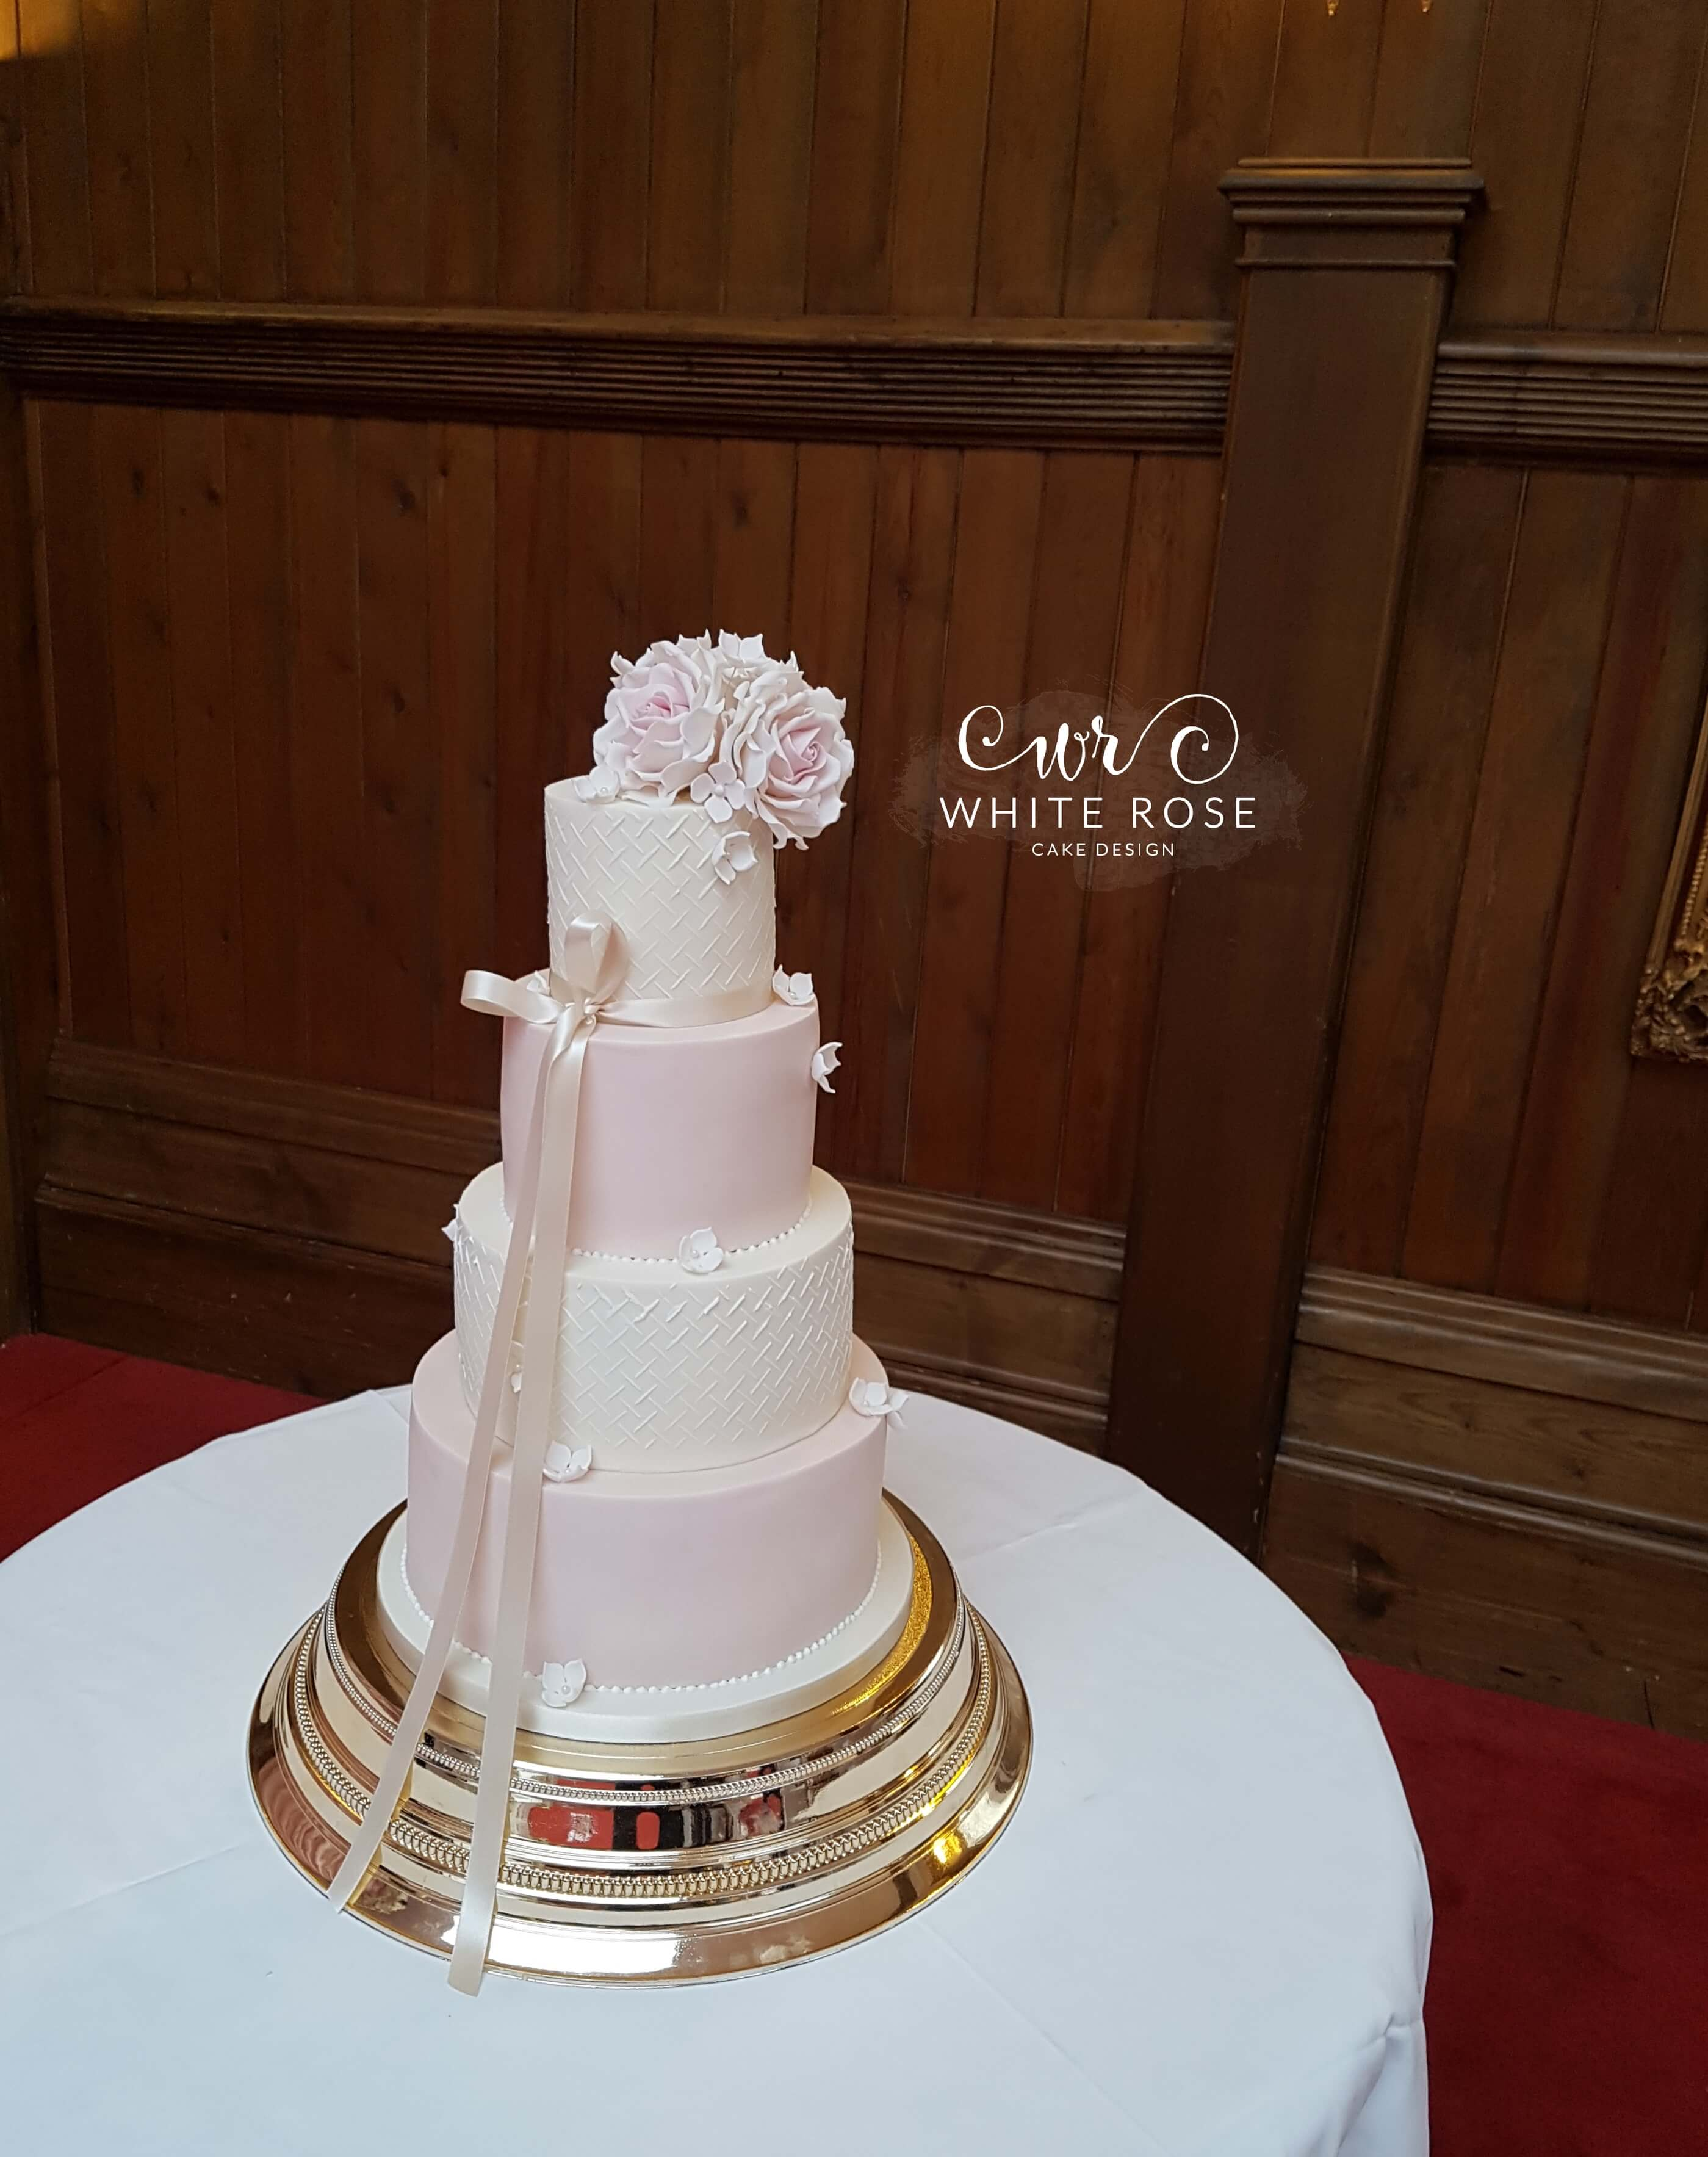 Four Tier Pink and White Wedding Cake with Gold Stand and Sugar Roses at Crossley House by White Rose Cake Design Bespoke Cake Makers in Holmfirth Halifax Huddersfield West Yorkshire